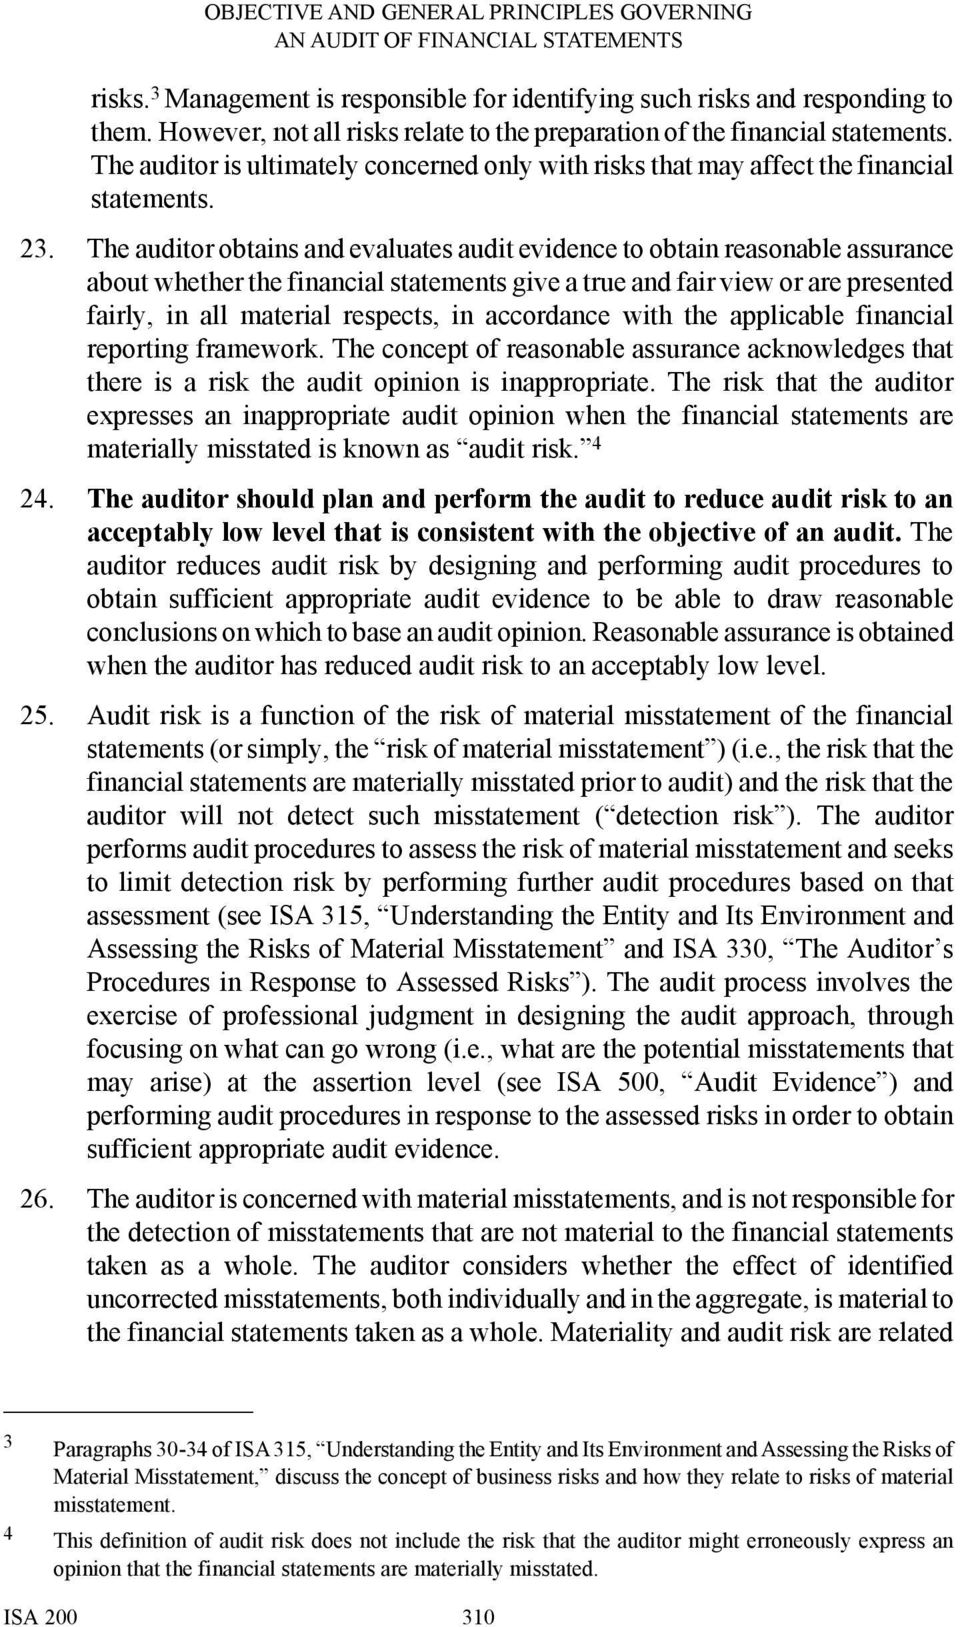 The auditor obtains and evaluates audit evidence to obtain reasonable assurance about whether the financial statements give a true and fair view or are presented fairly, in all material respects, in